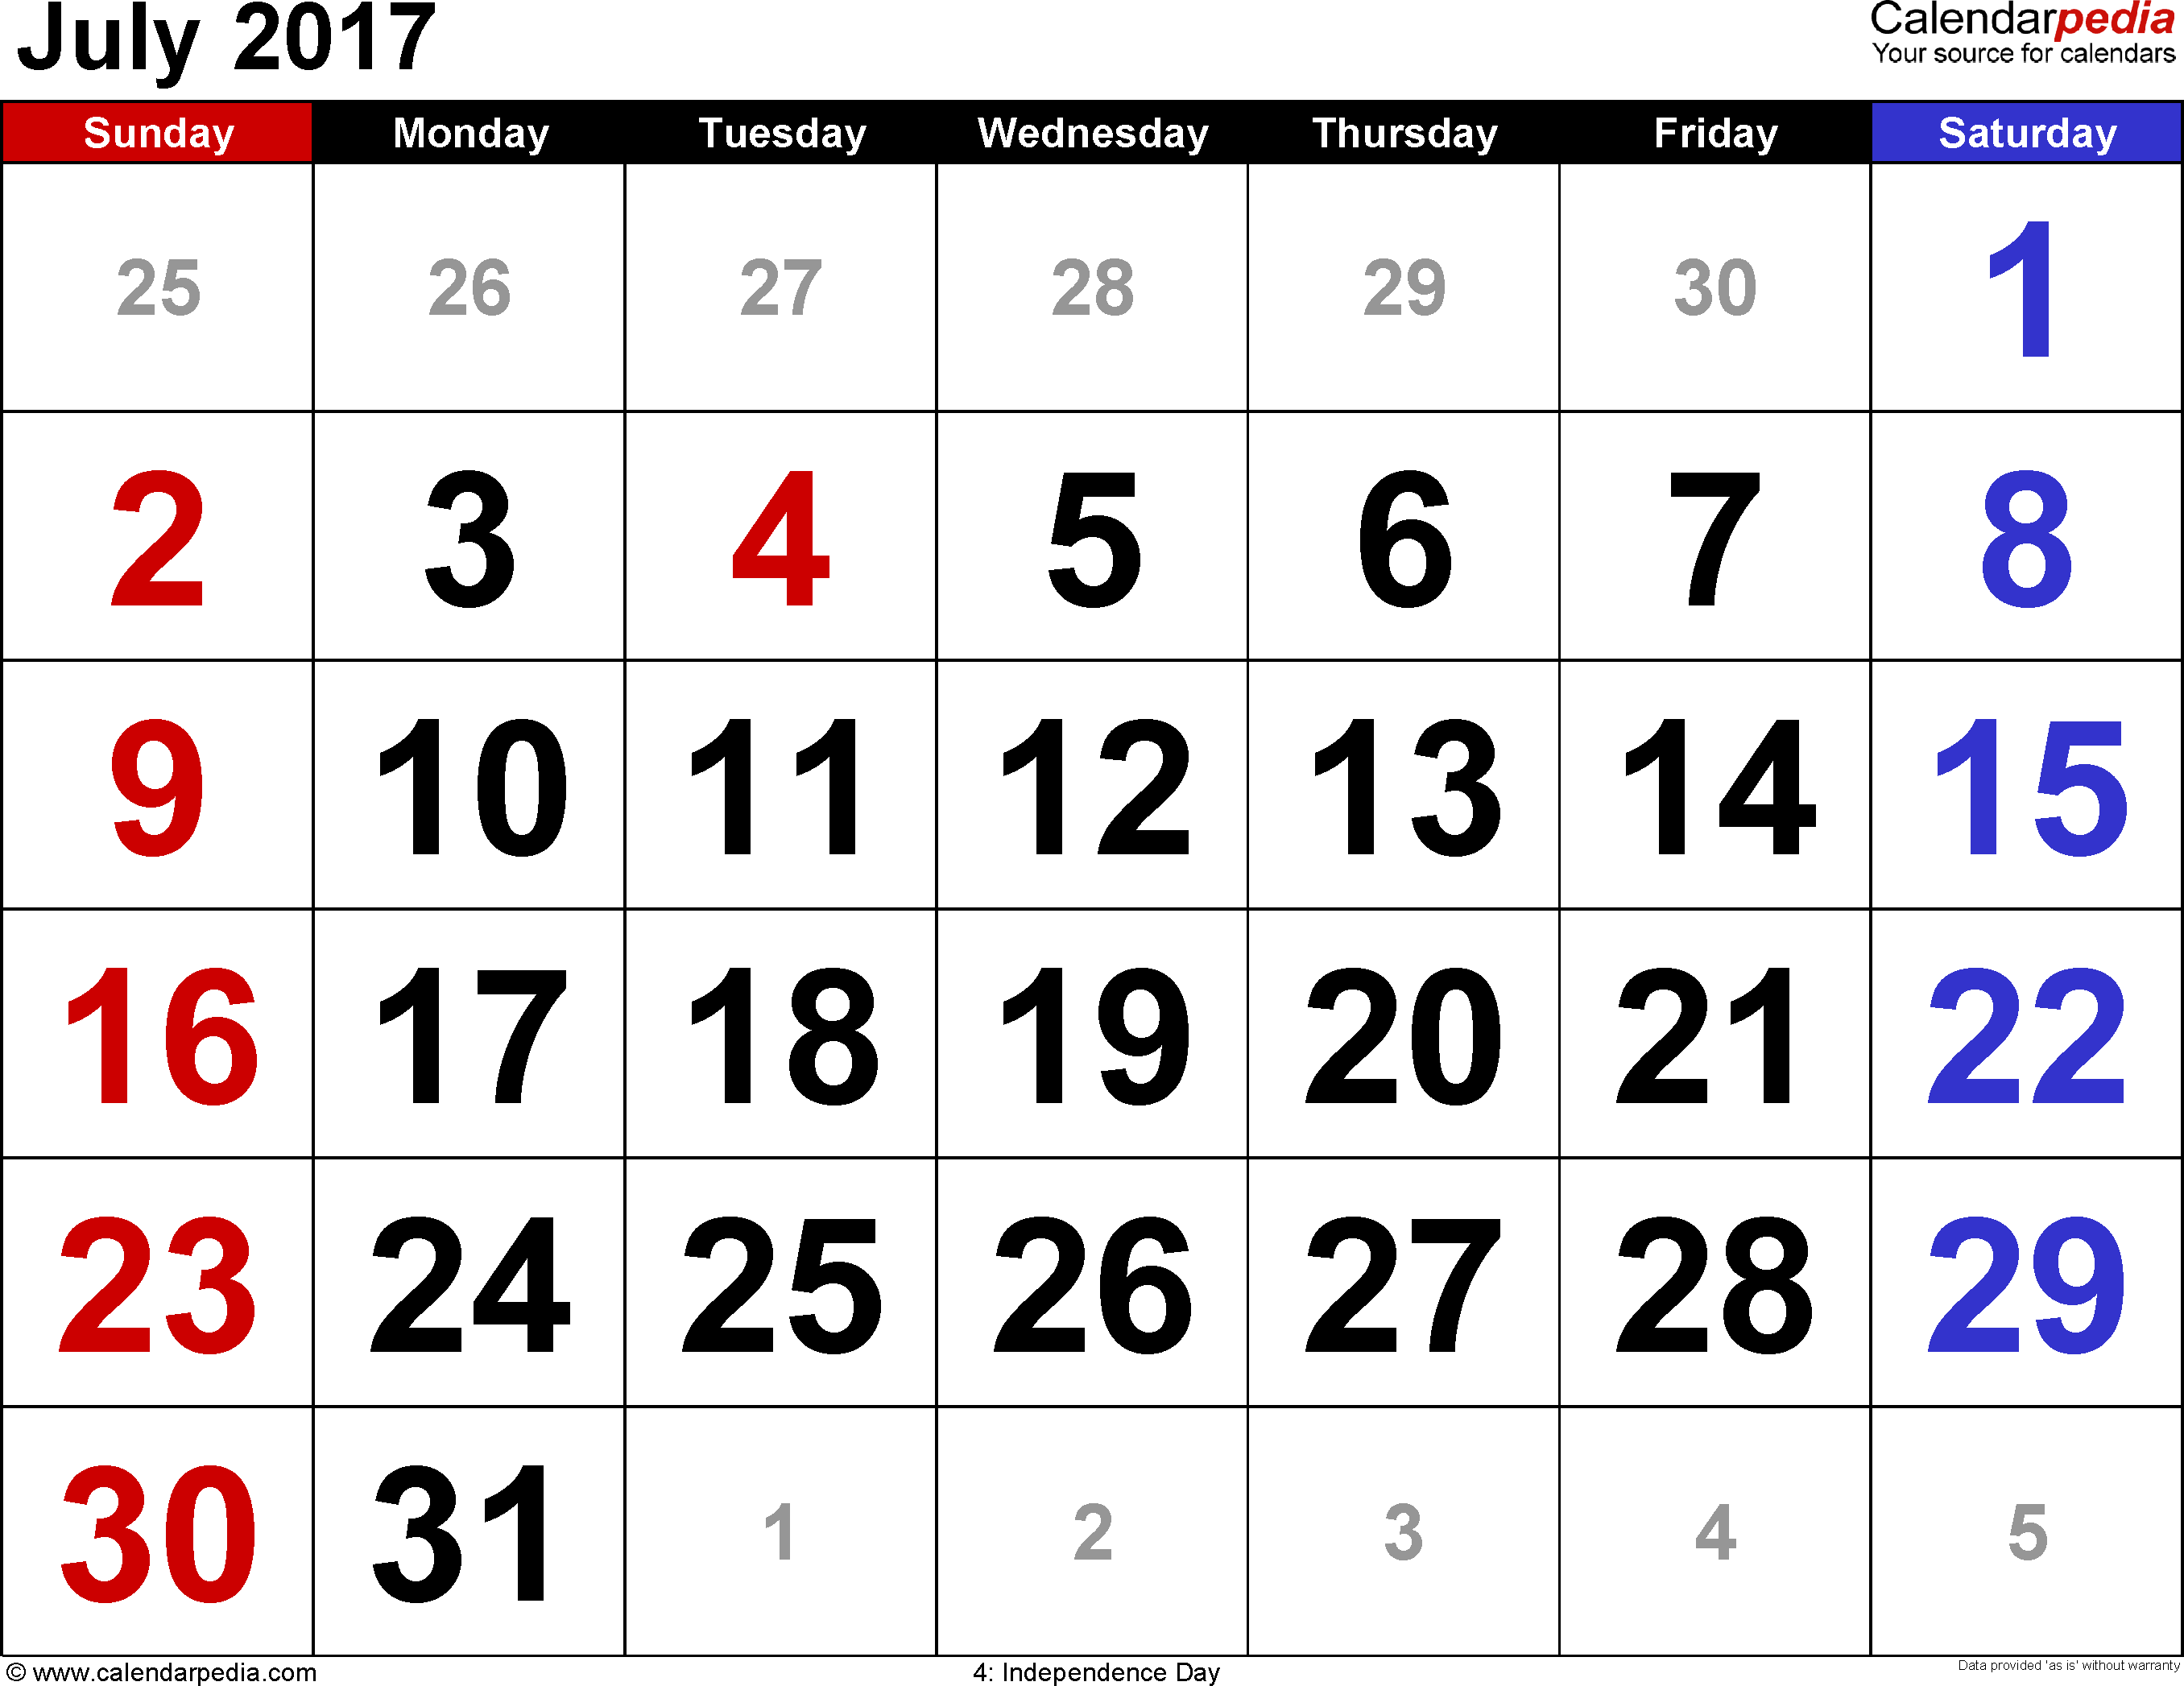 July 2017 calendar, landscape orientation, large numerals, available as printable templates for Word, Excel and PDF